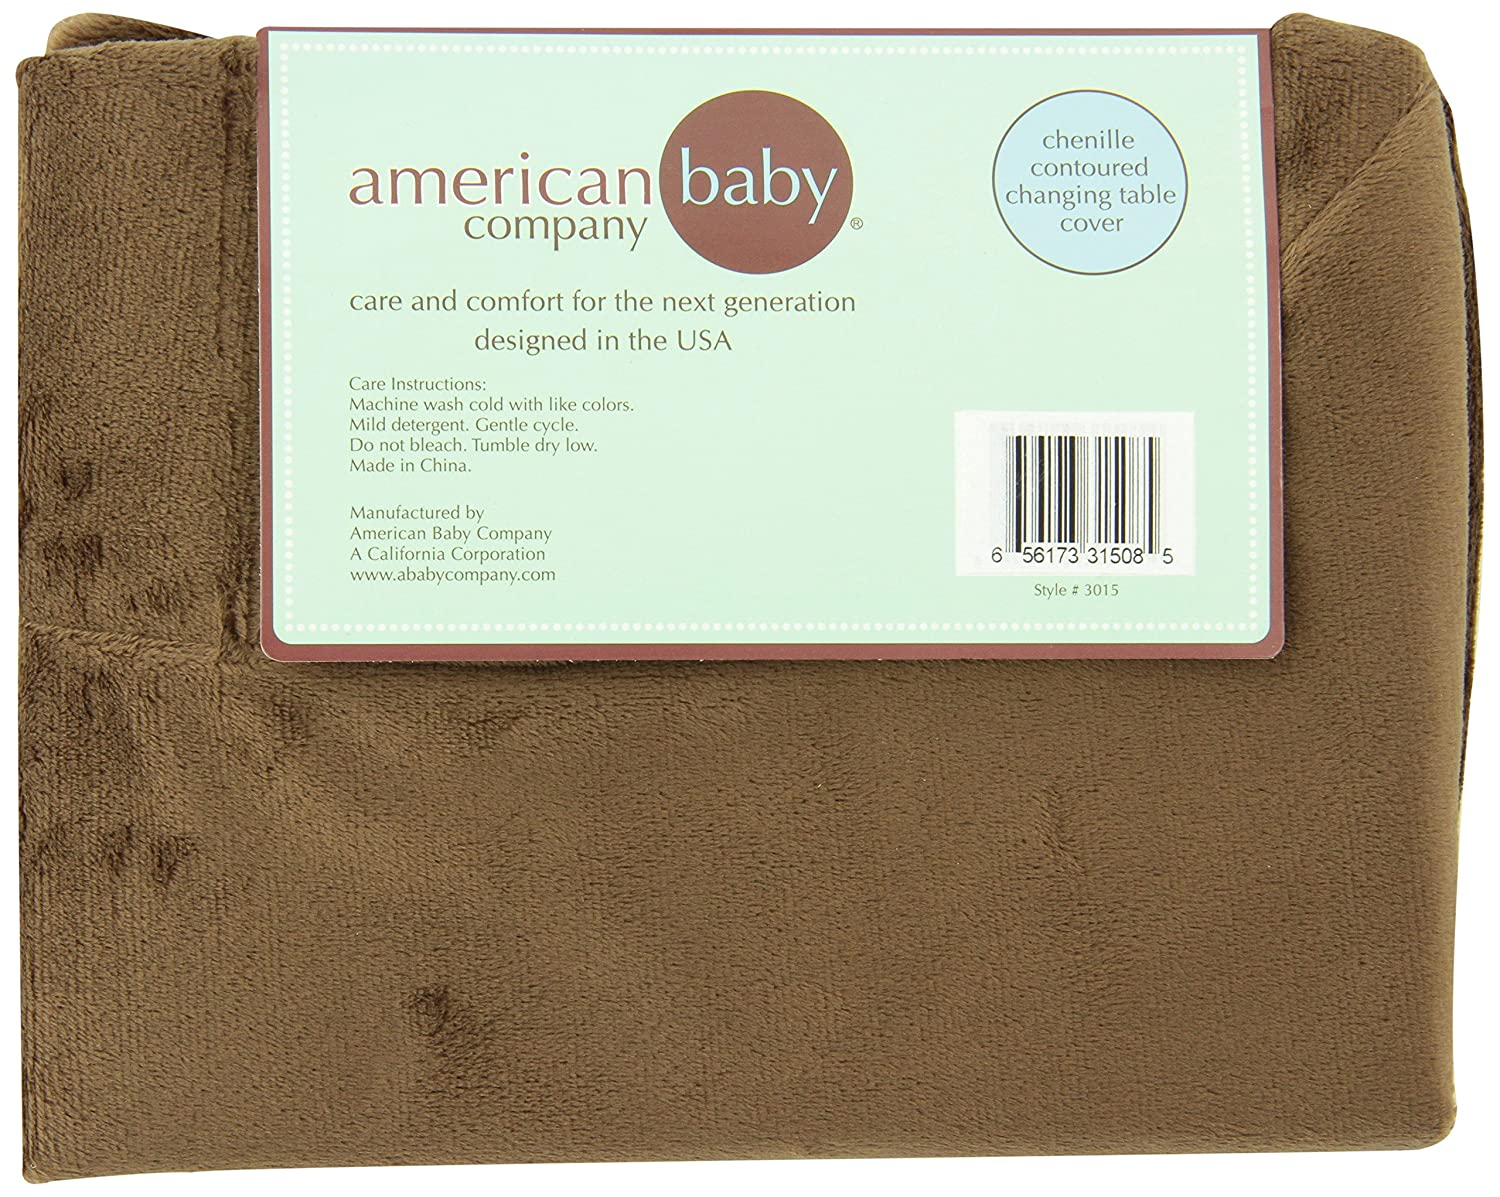 Amazoncom American Baby Company Heavenly Soft Chenille Fitted - American table pad company